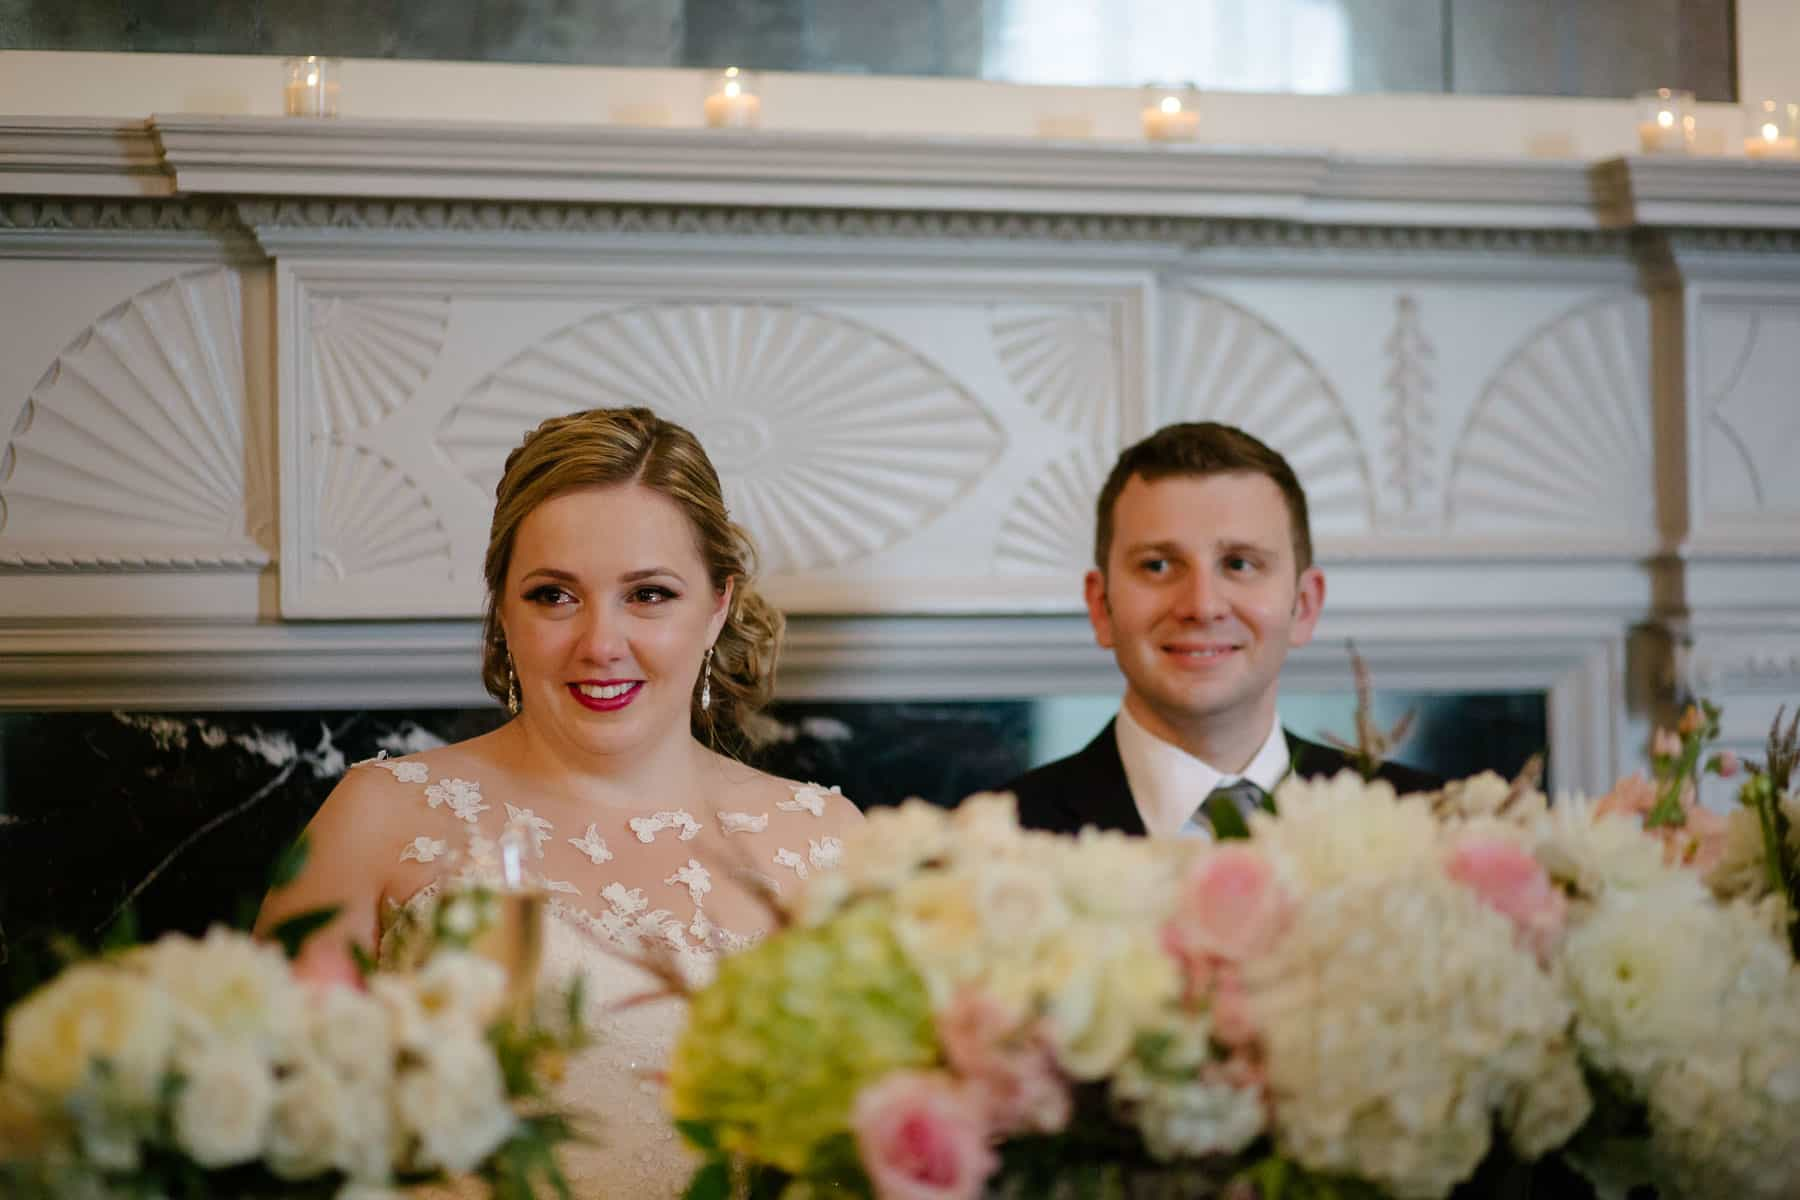 Bride teary-eyed and smiling at reception at McClain House, Estates of Sunnybrook.